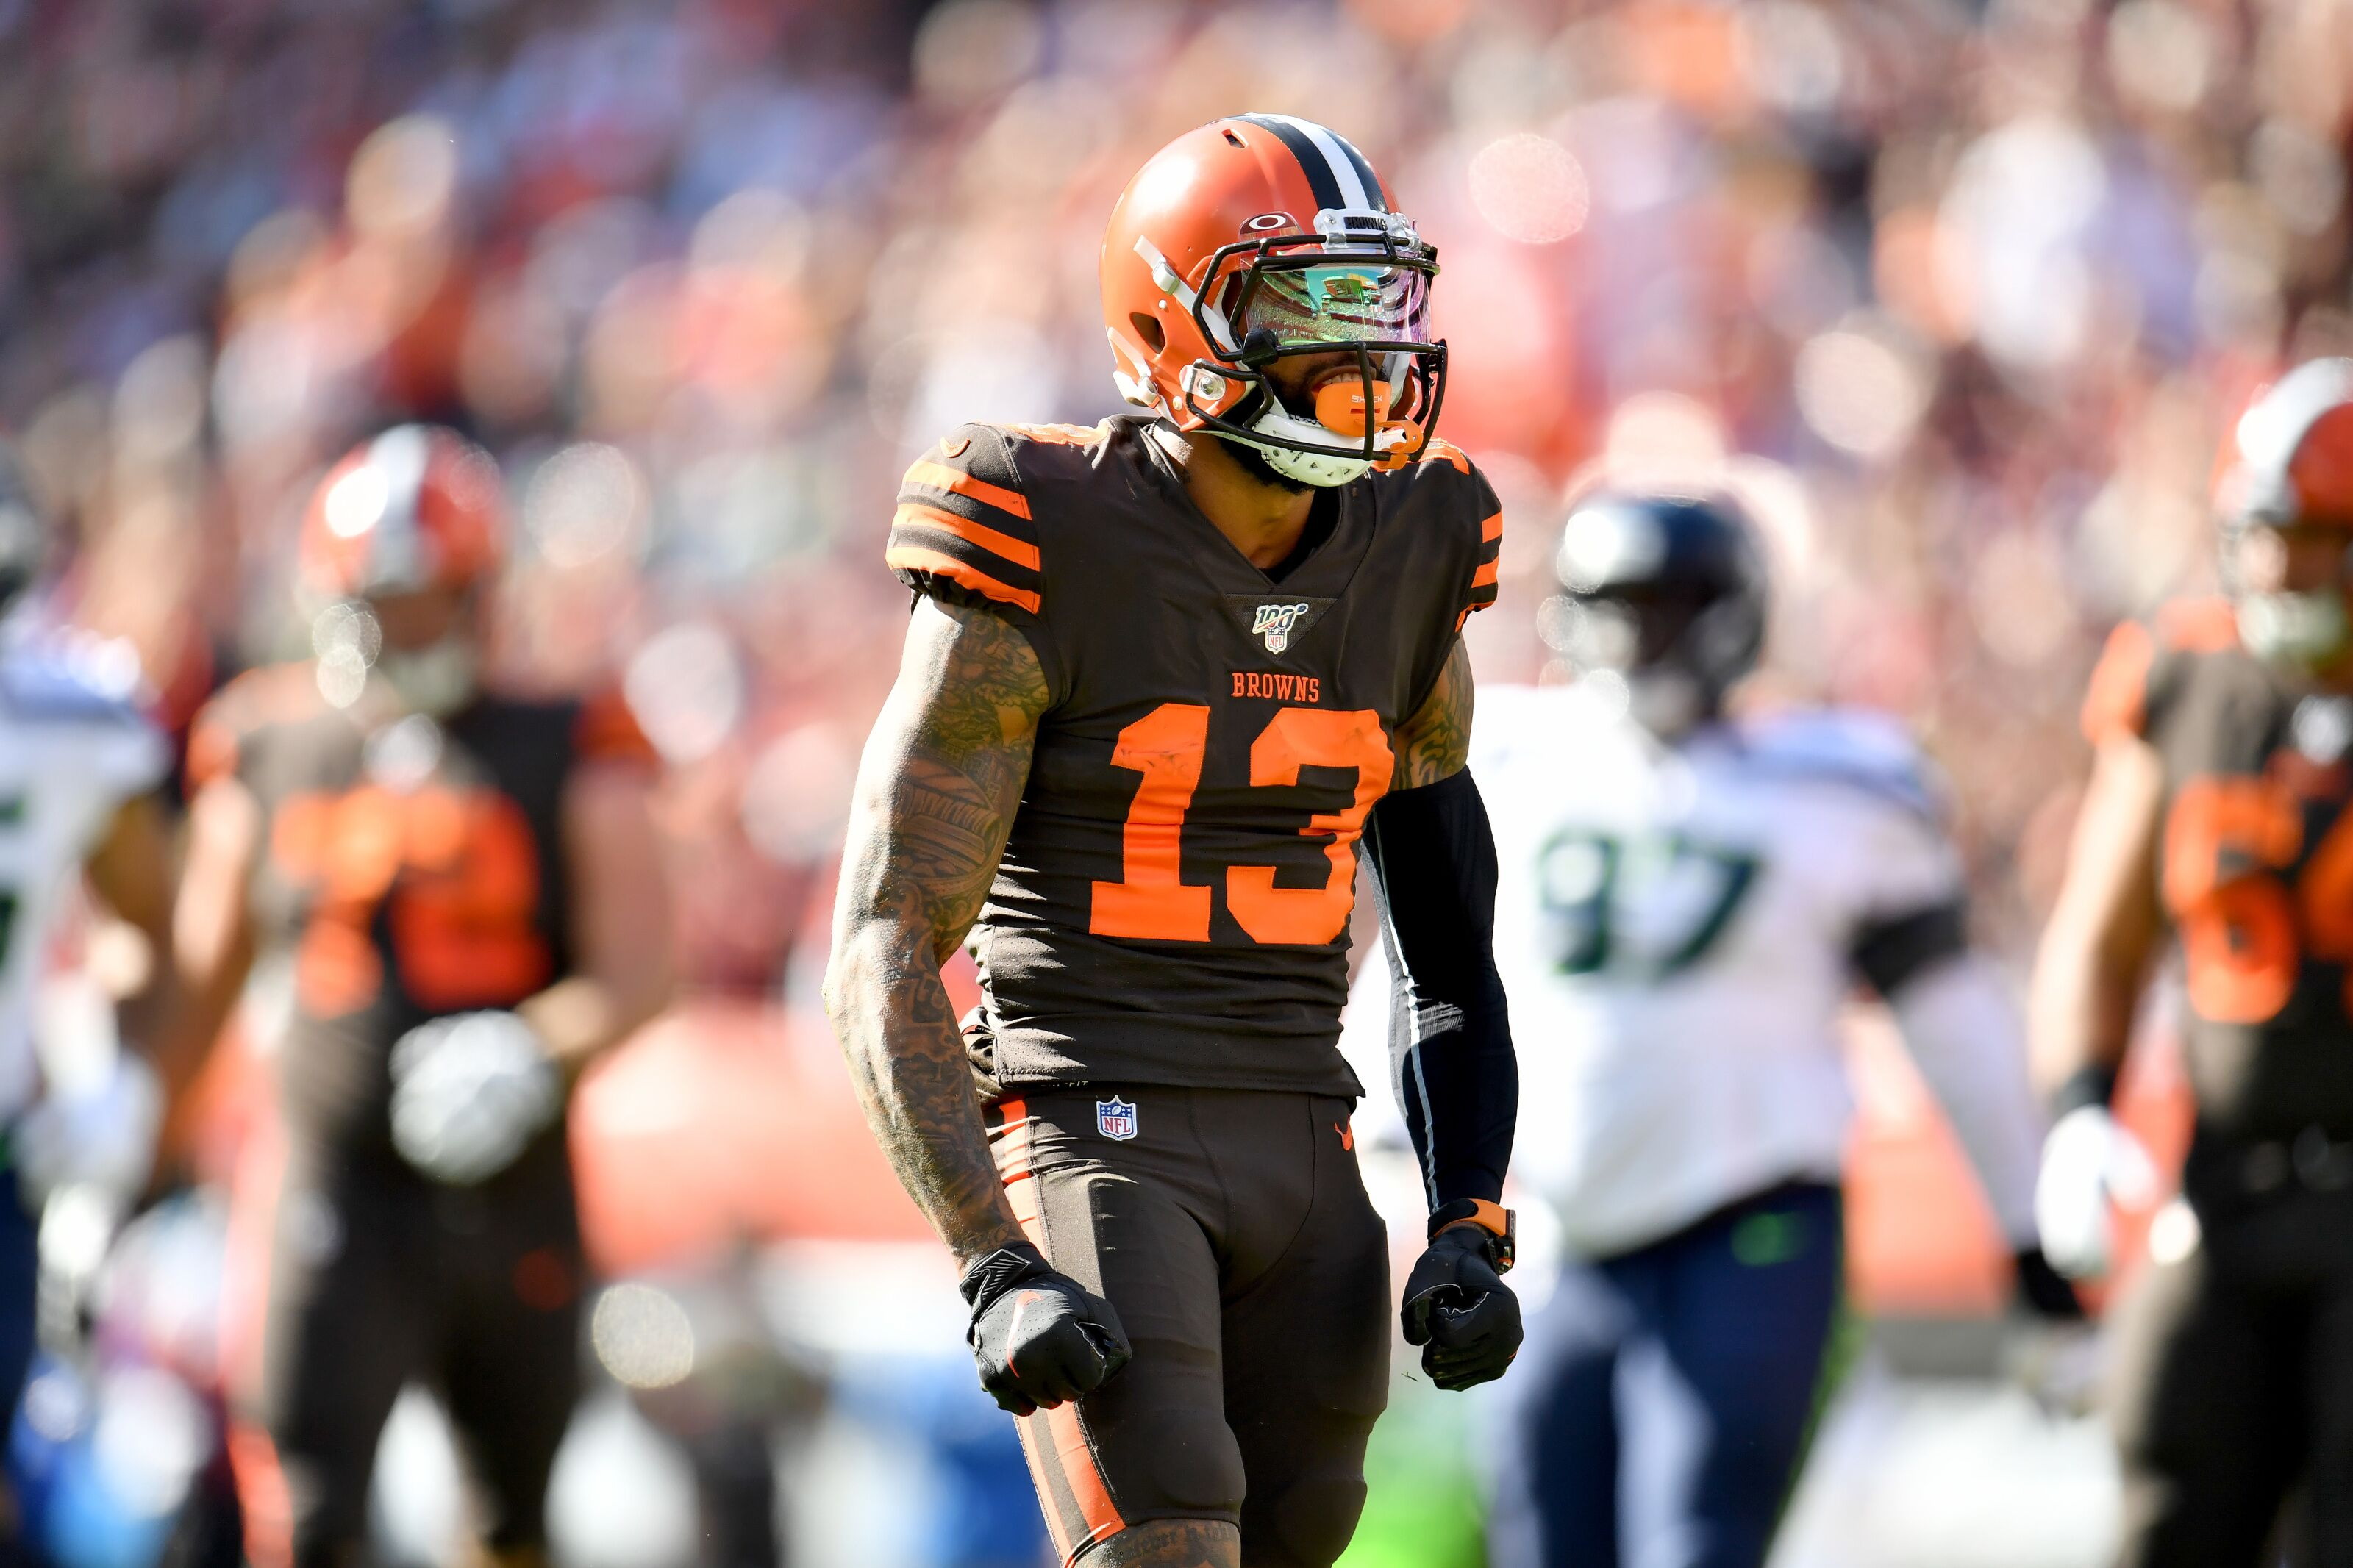 Cleveland Browns: After six weeks, the Giants are winning OBJ trade so far